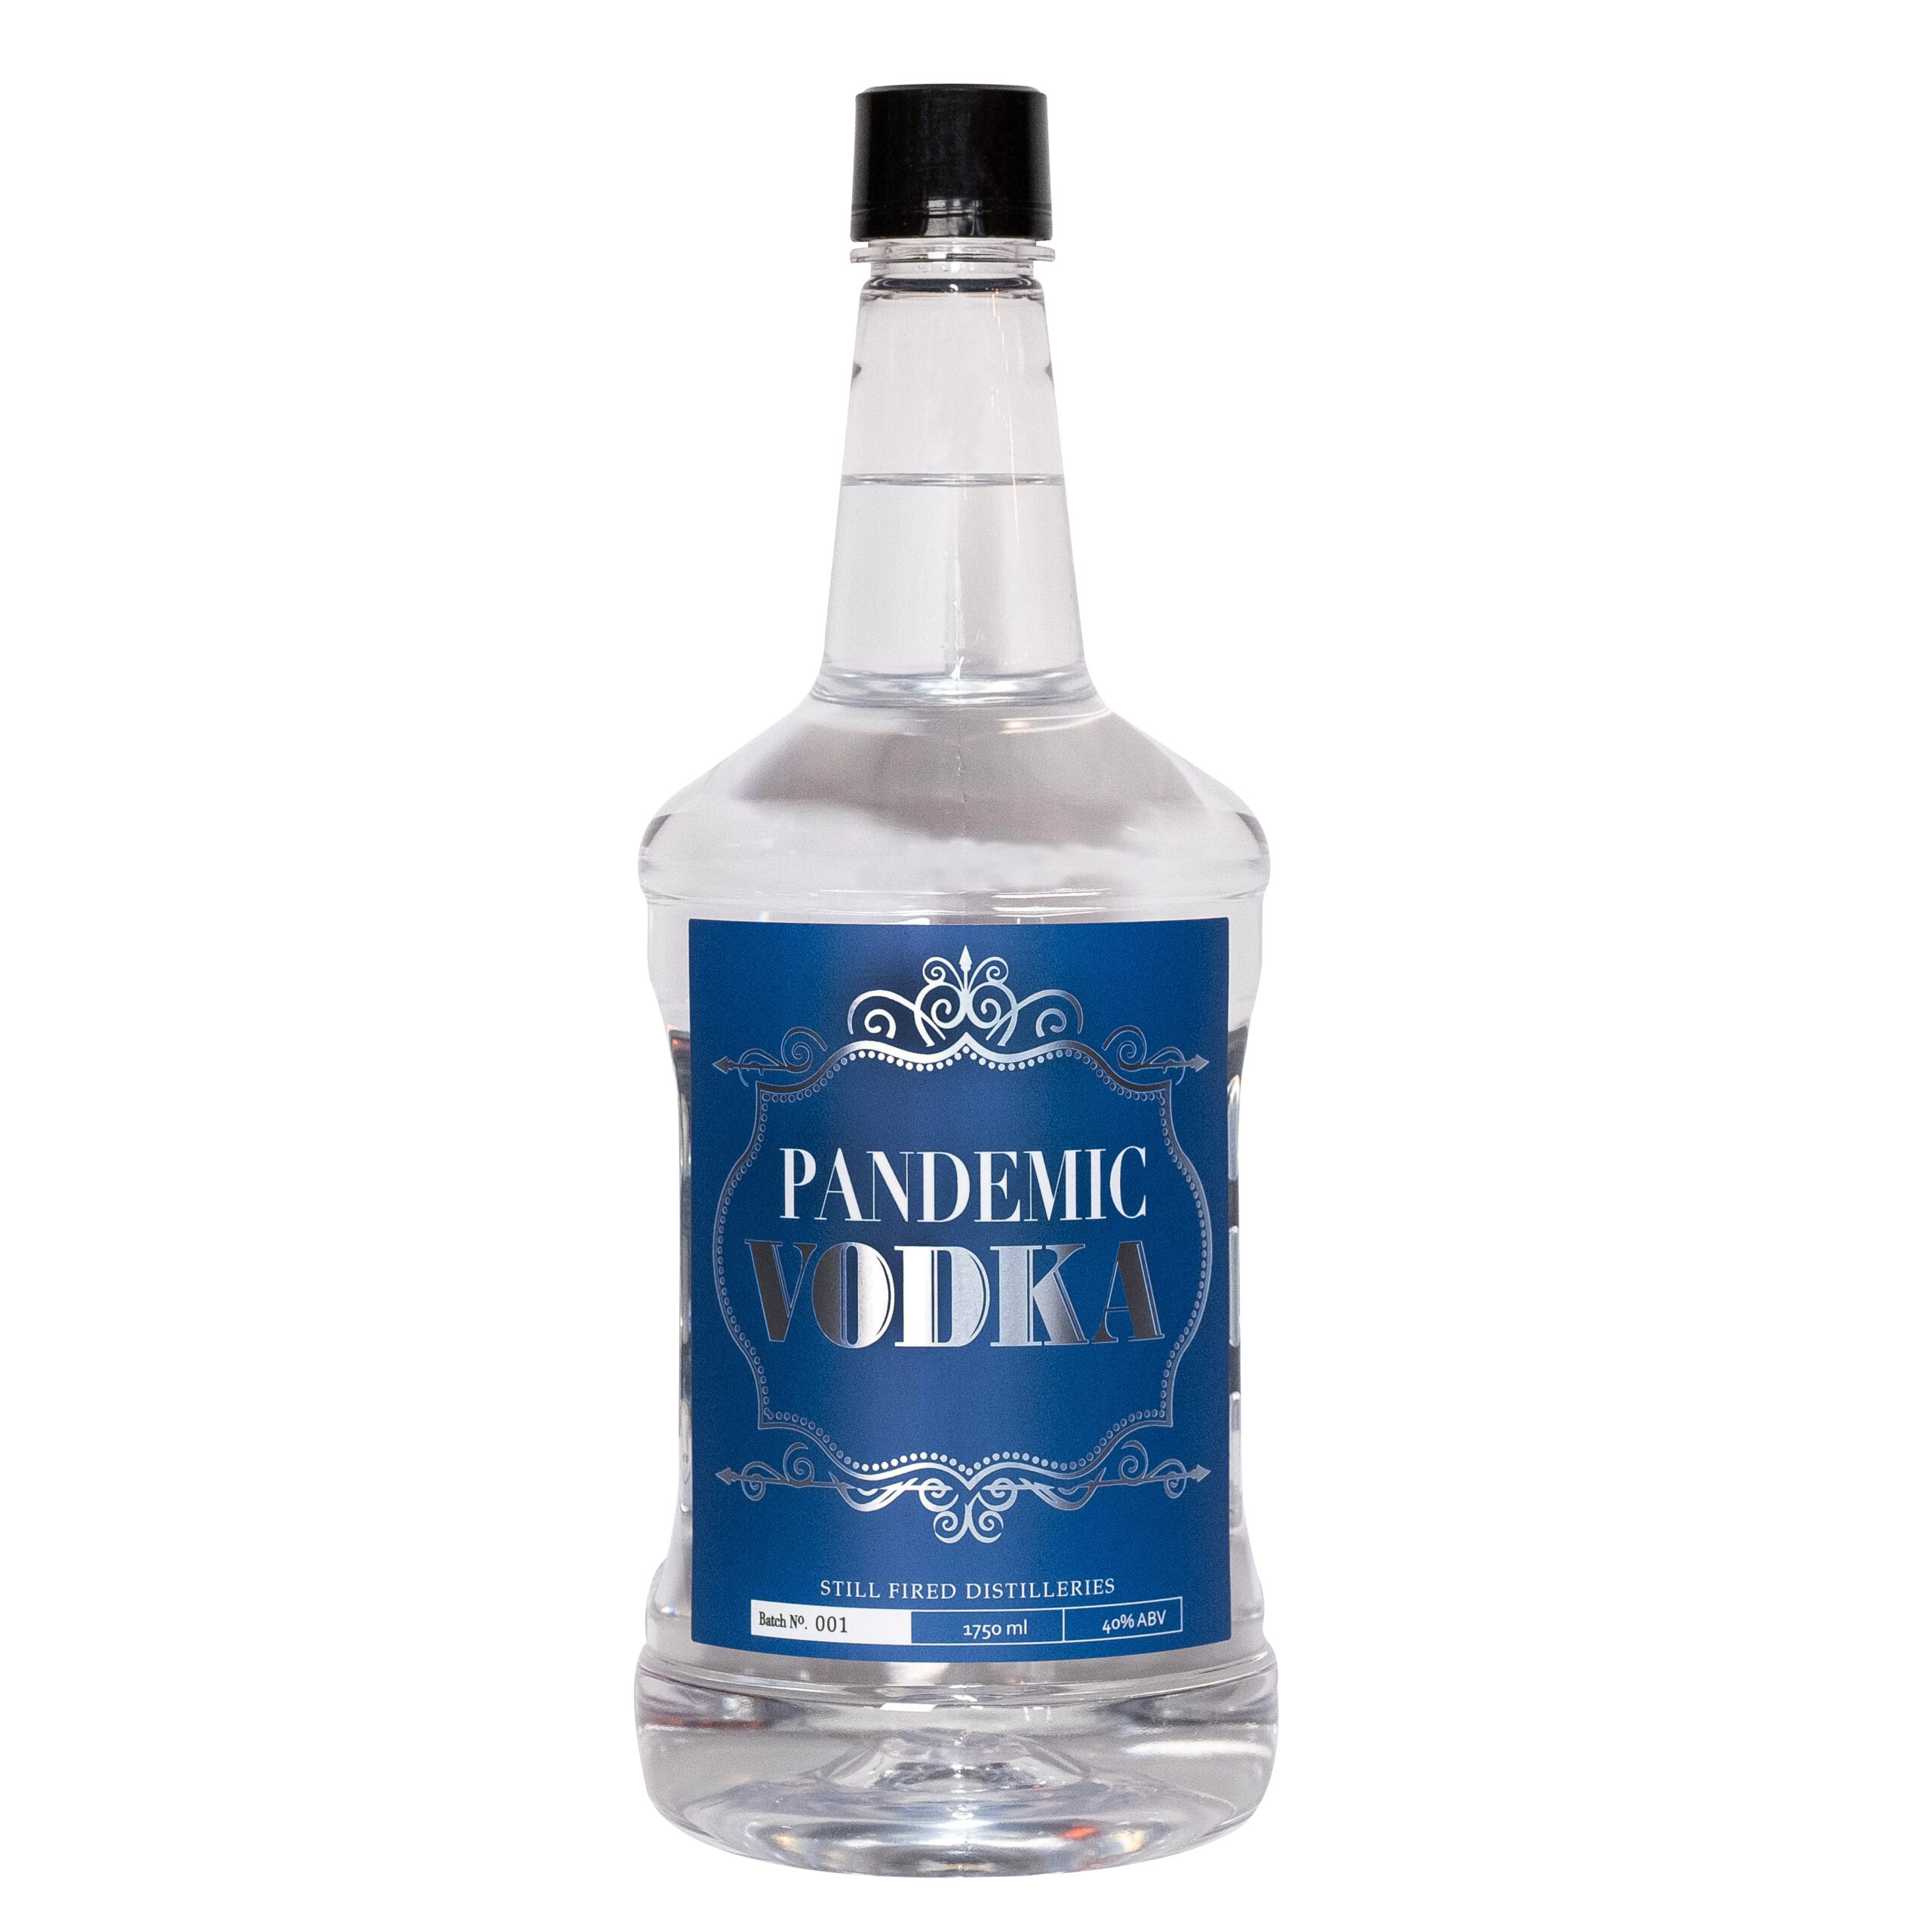 Pandemic Vodka